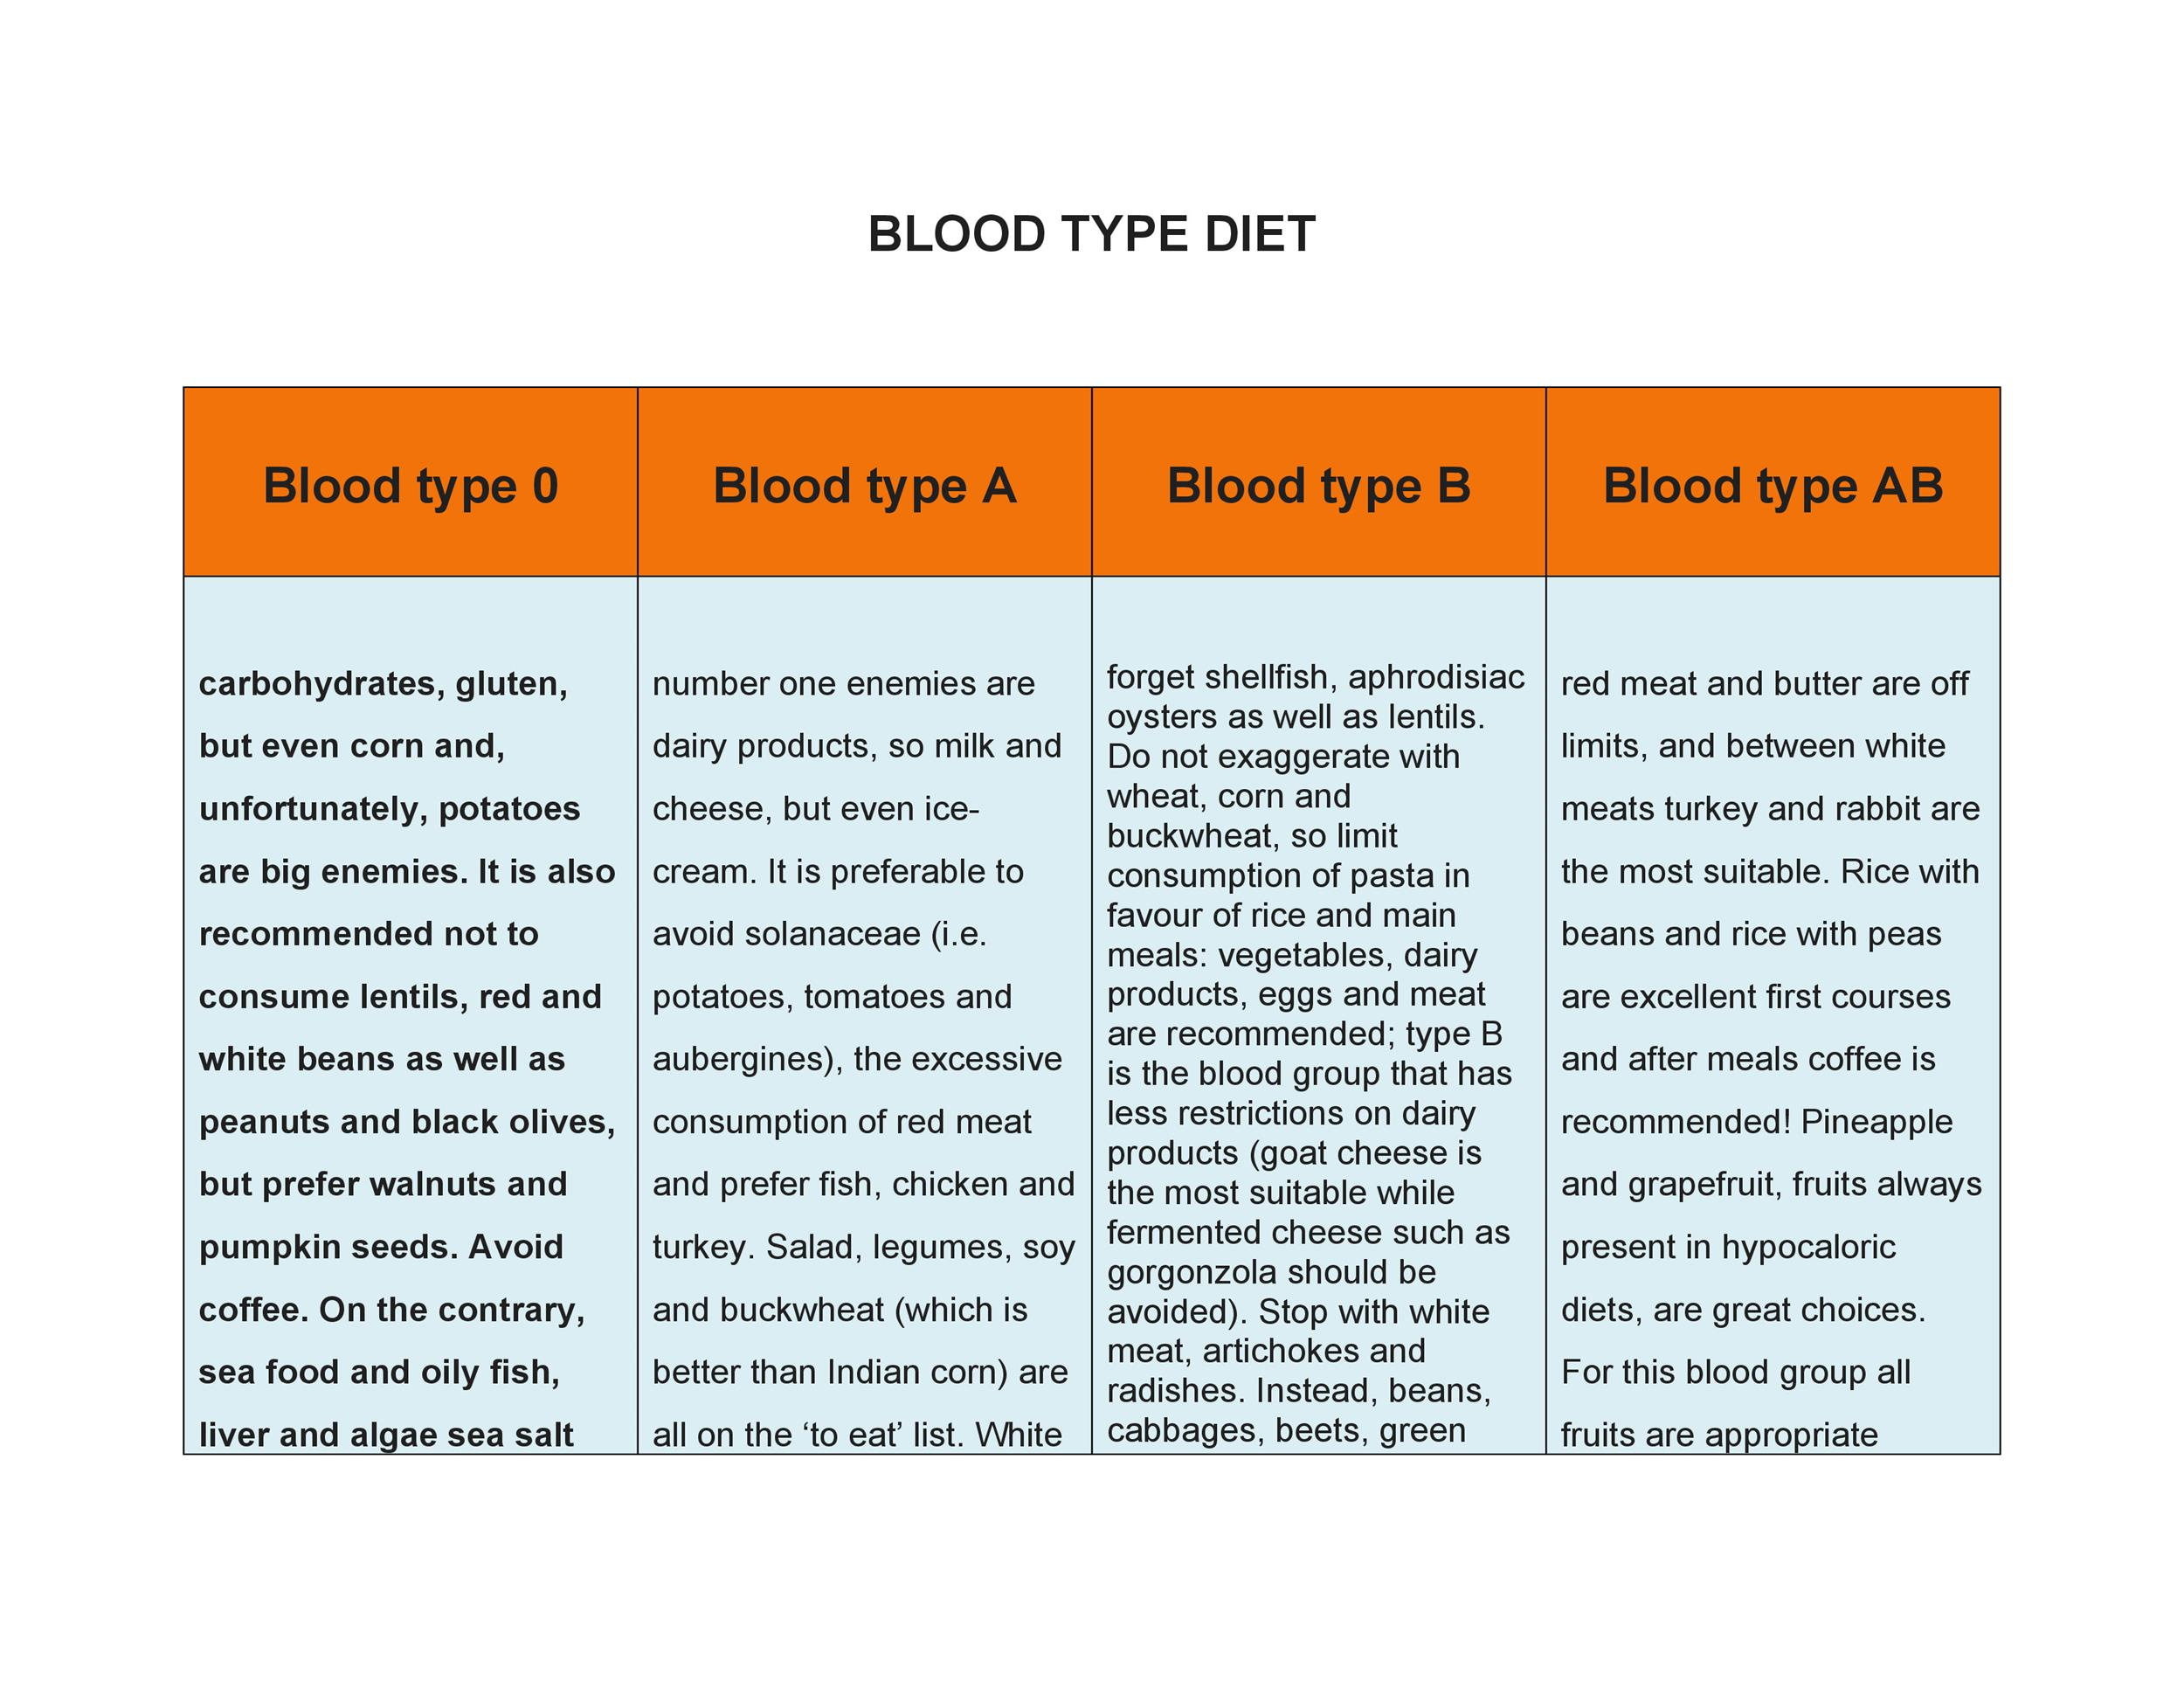 Blood Type Diet Chart Ab Positive - Eat Right For Your Type The Dr